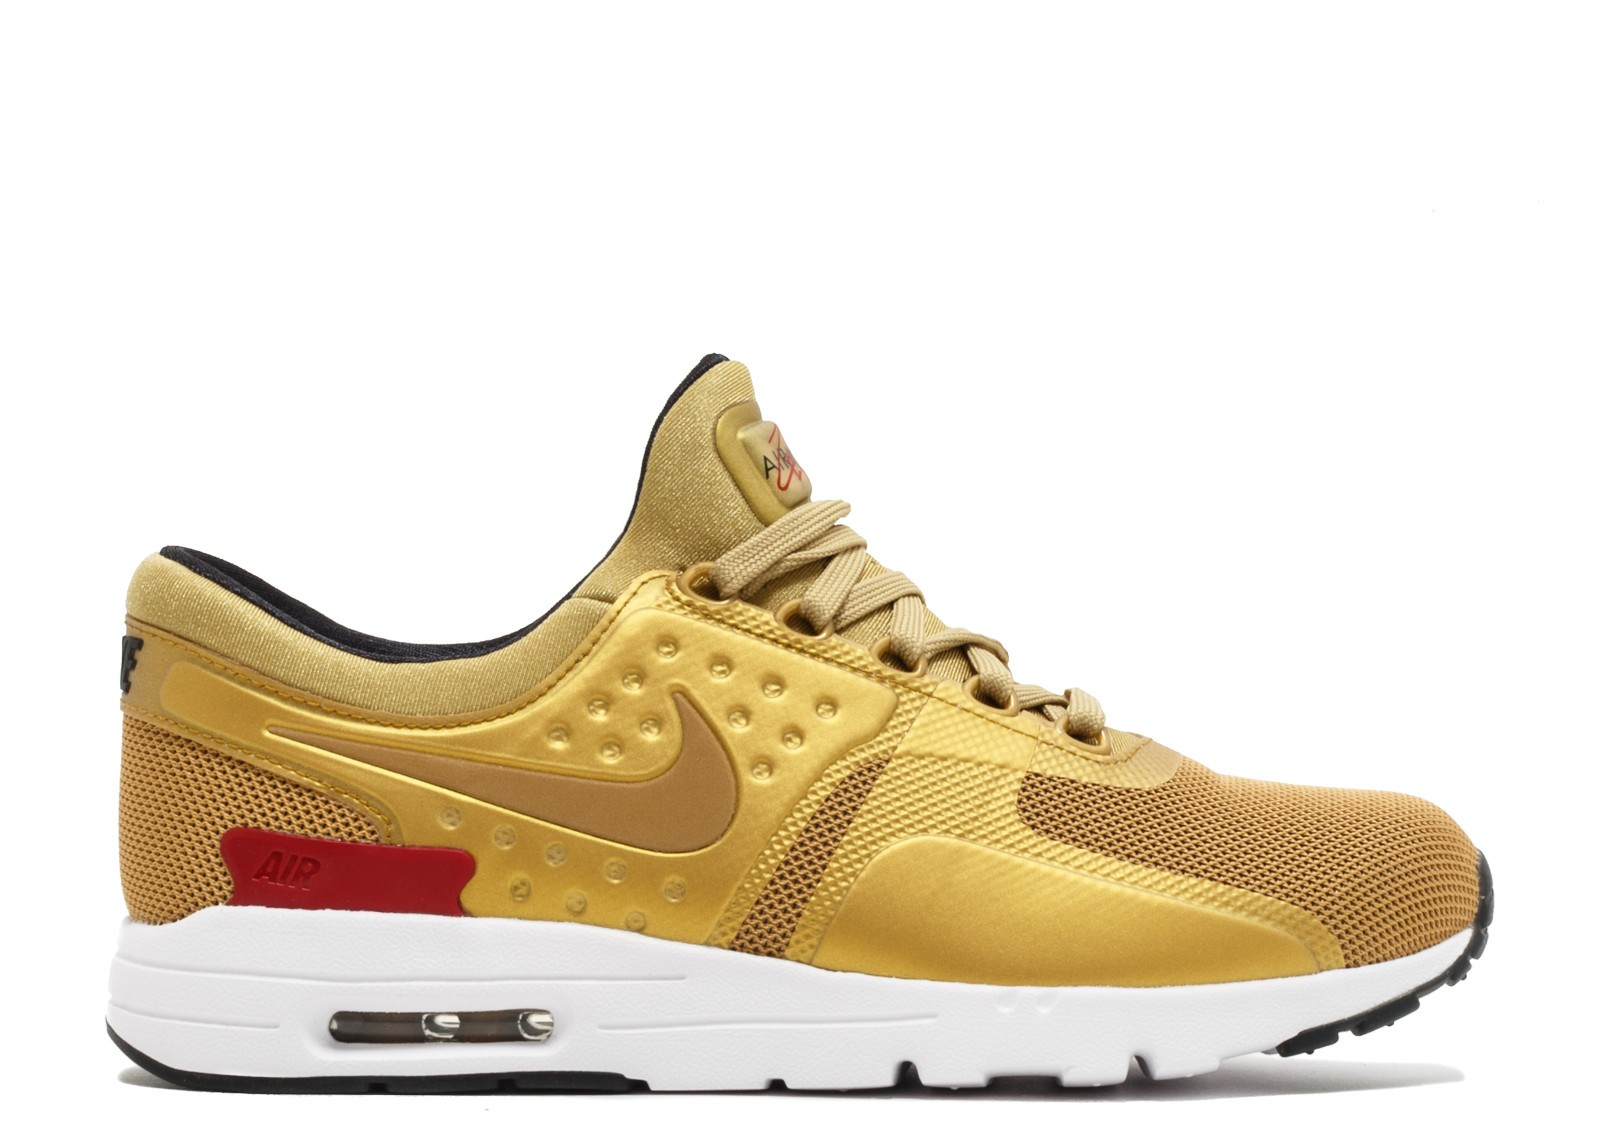 Nike Air Max Zero 863700-700 - Metallic Gold/Blanche/Noir/Rouge Chaussures